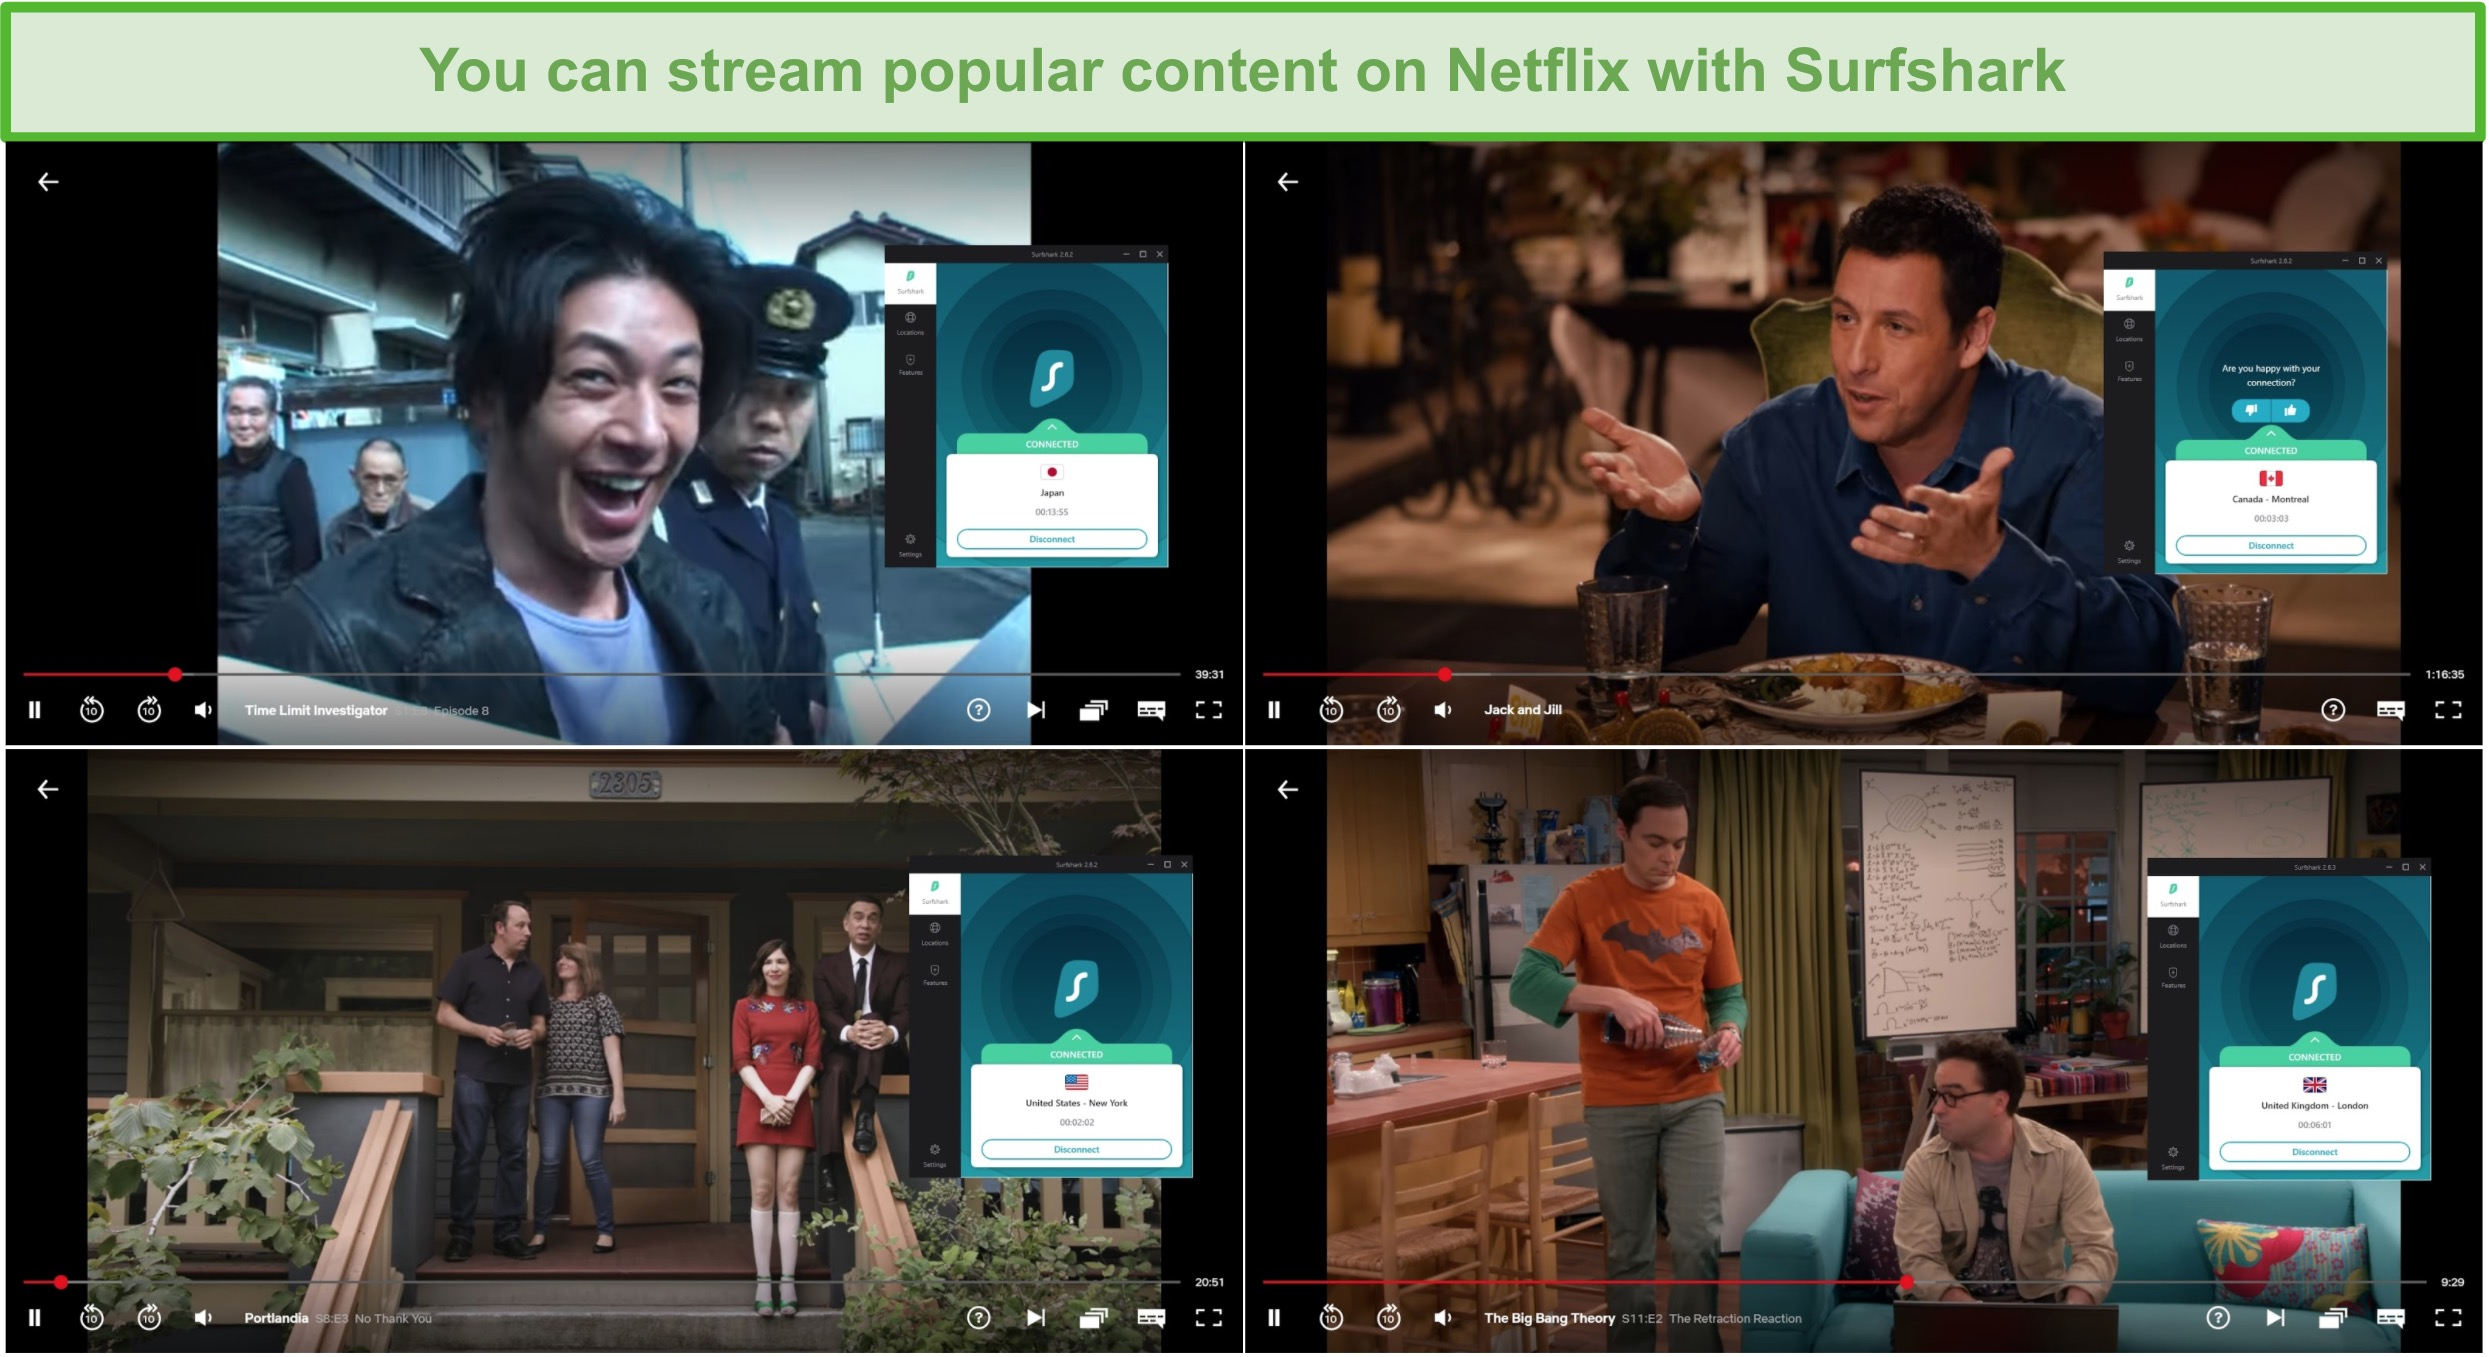 Screenshot of Surfshark streaming from Netflix Japan (Time Limit Investigator), Canada (Jack and Jill), the US (Portlandia), and the UK (Big Bang Theory)